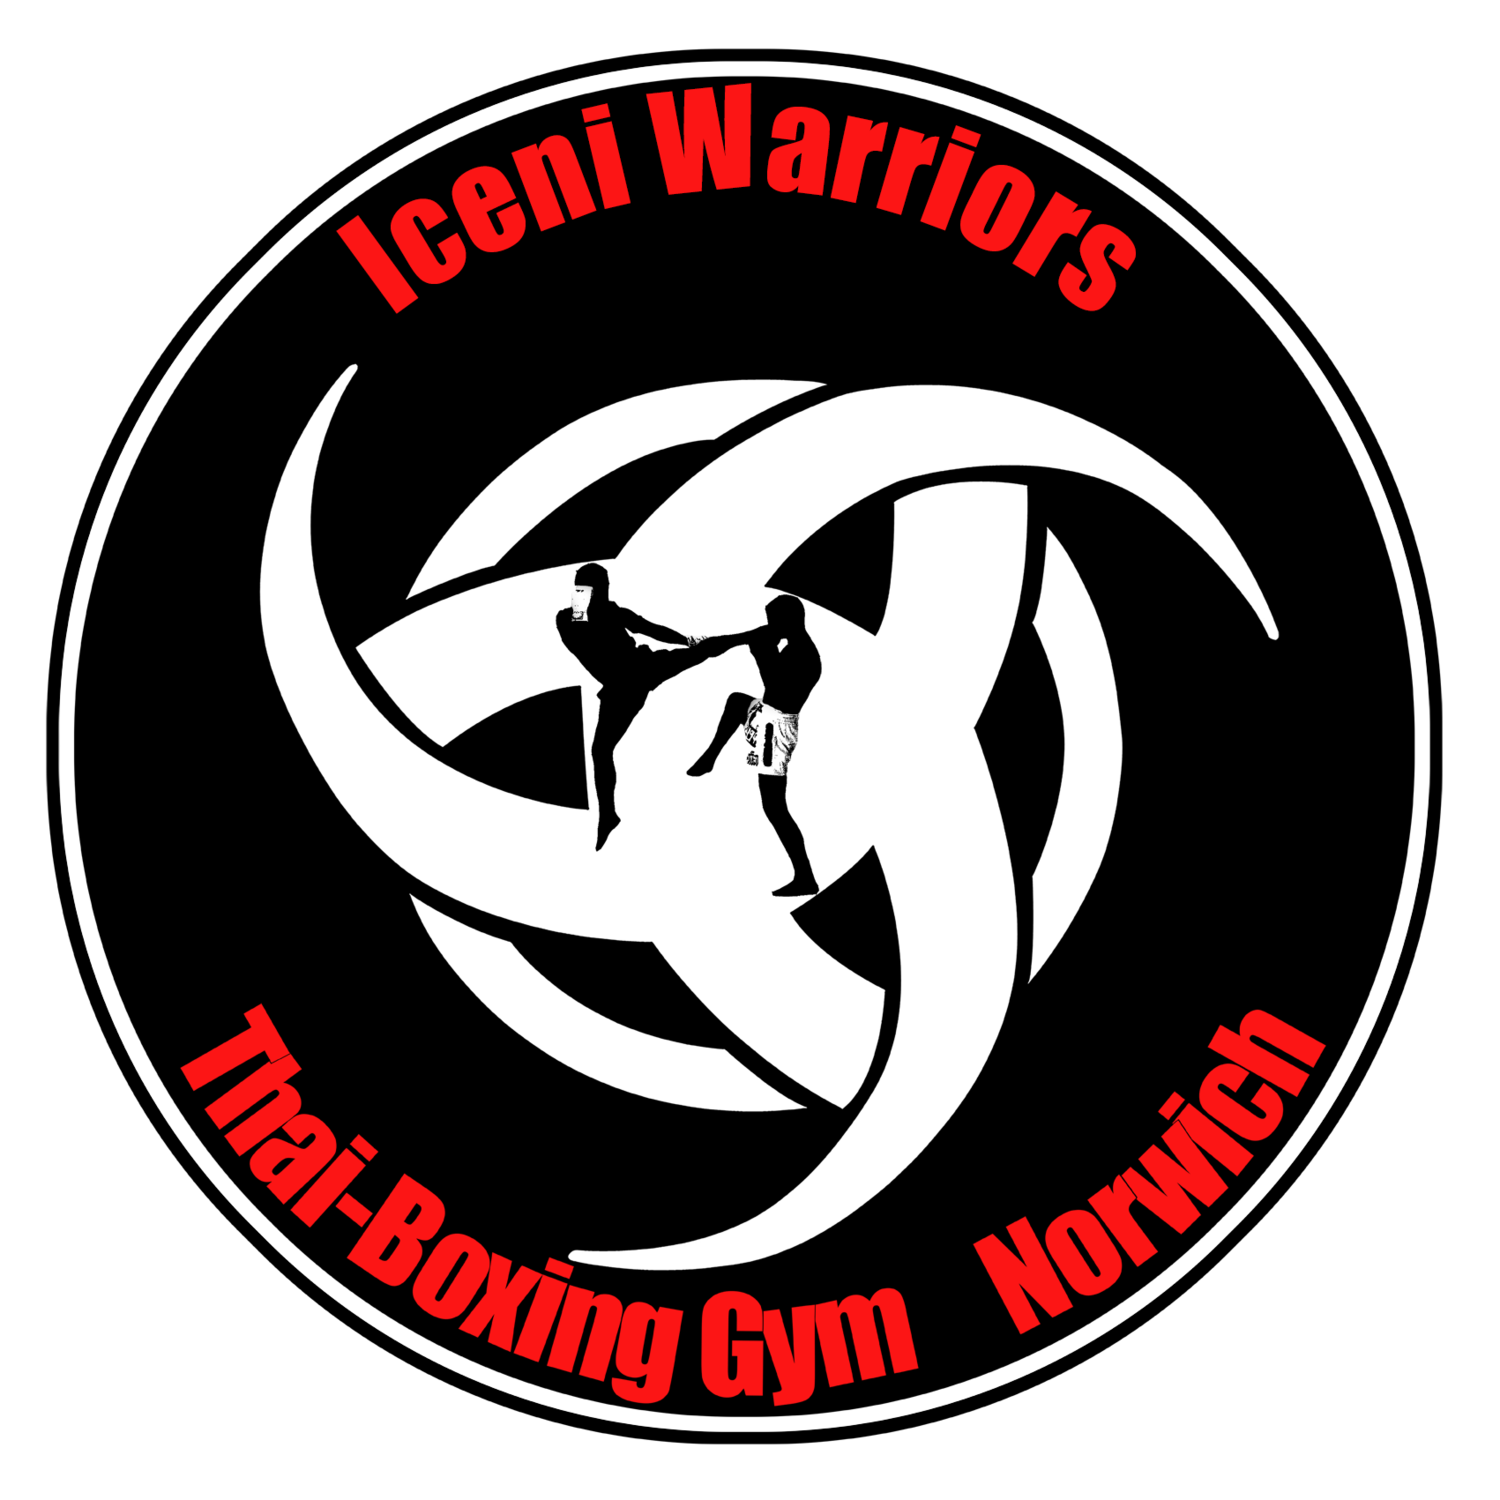 Iceni Warriors